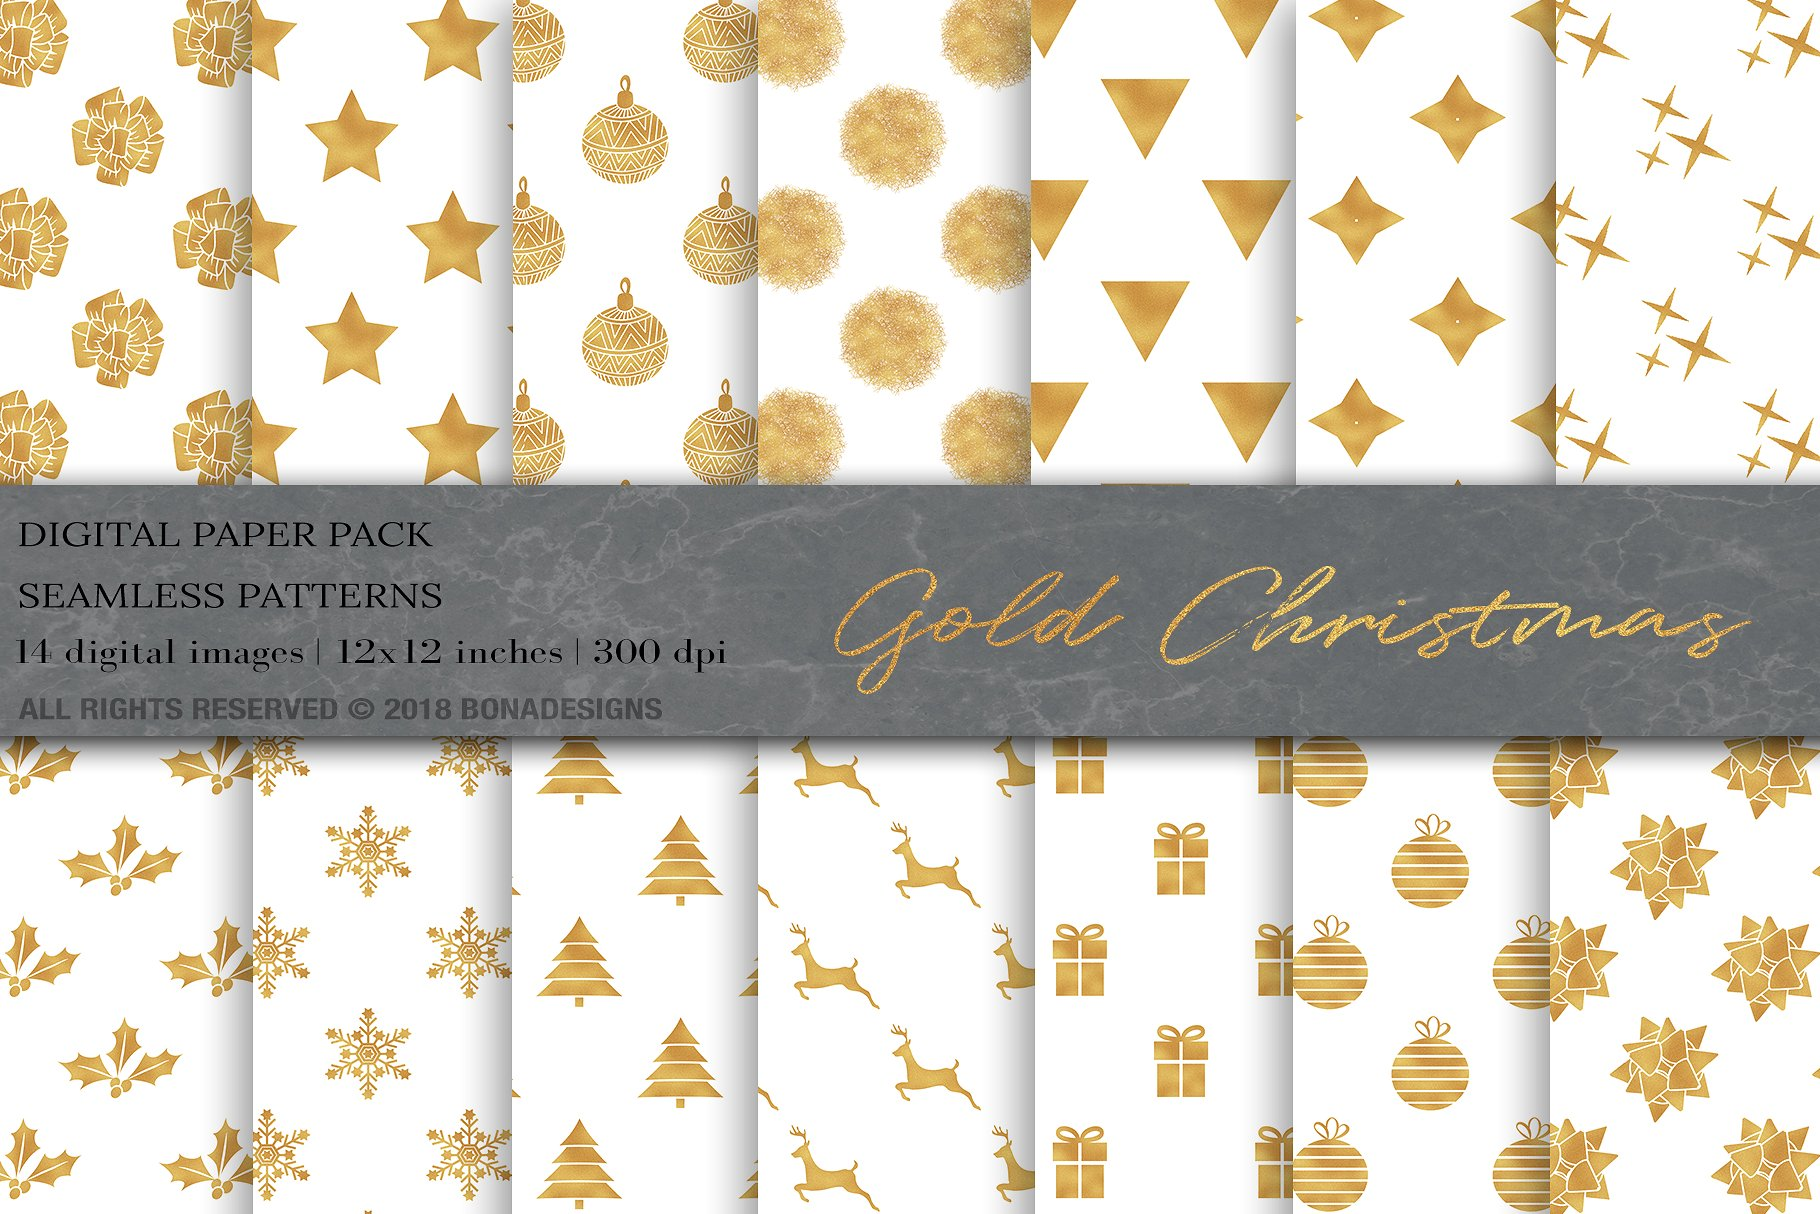 Gold Christmas Digital Papers- Buy Now $5 - Patterns, Pattern, Design Patterns, Art Patterns, Designs Patterns, Doodle Patterns, Floral Patterns, Illustration Patterns, Colorful Patterns, Modern Patterns, Fashion Patterns, Geometric Patterns https://avemateiu.com/patterns/